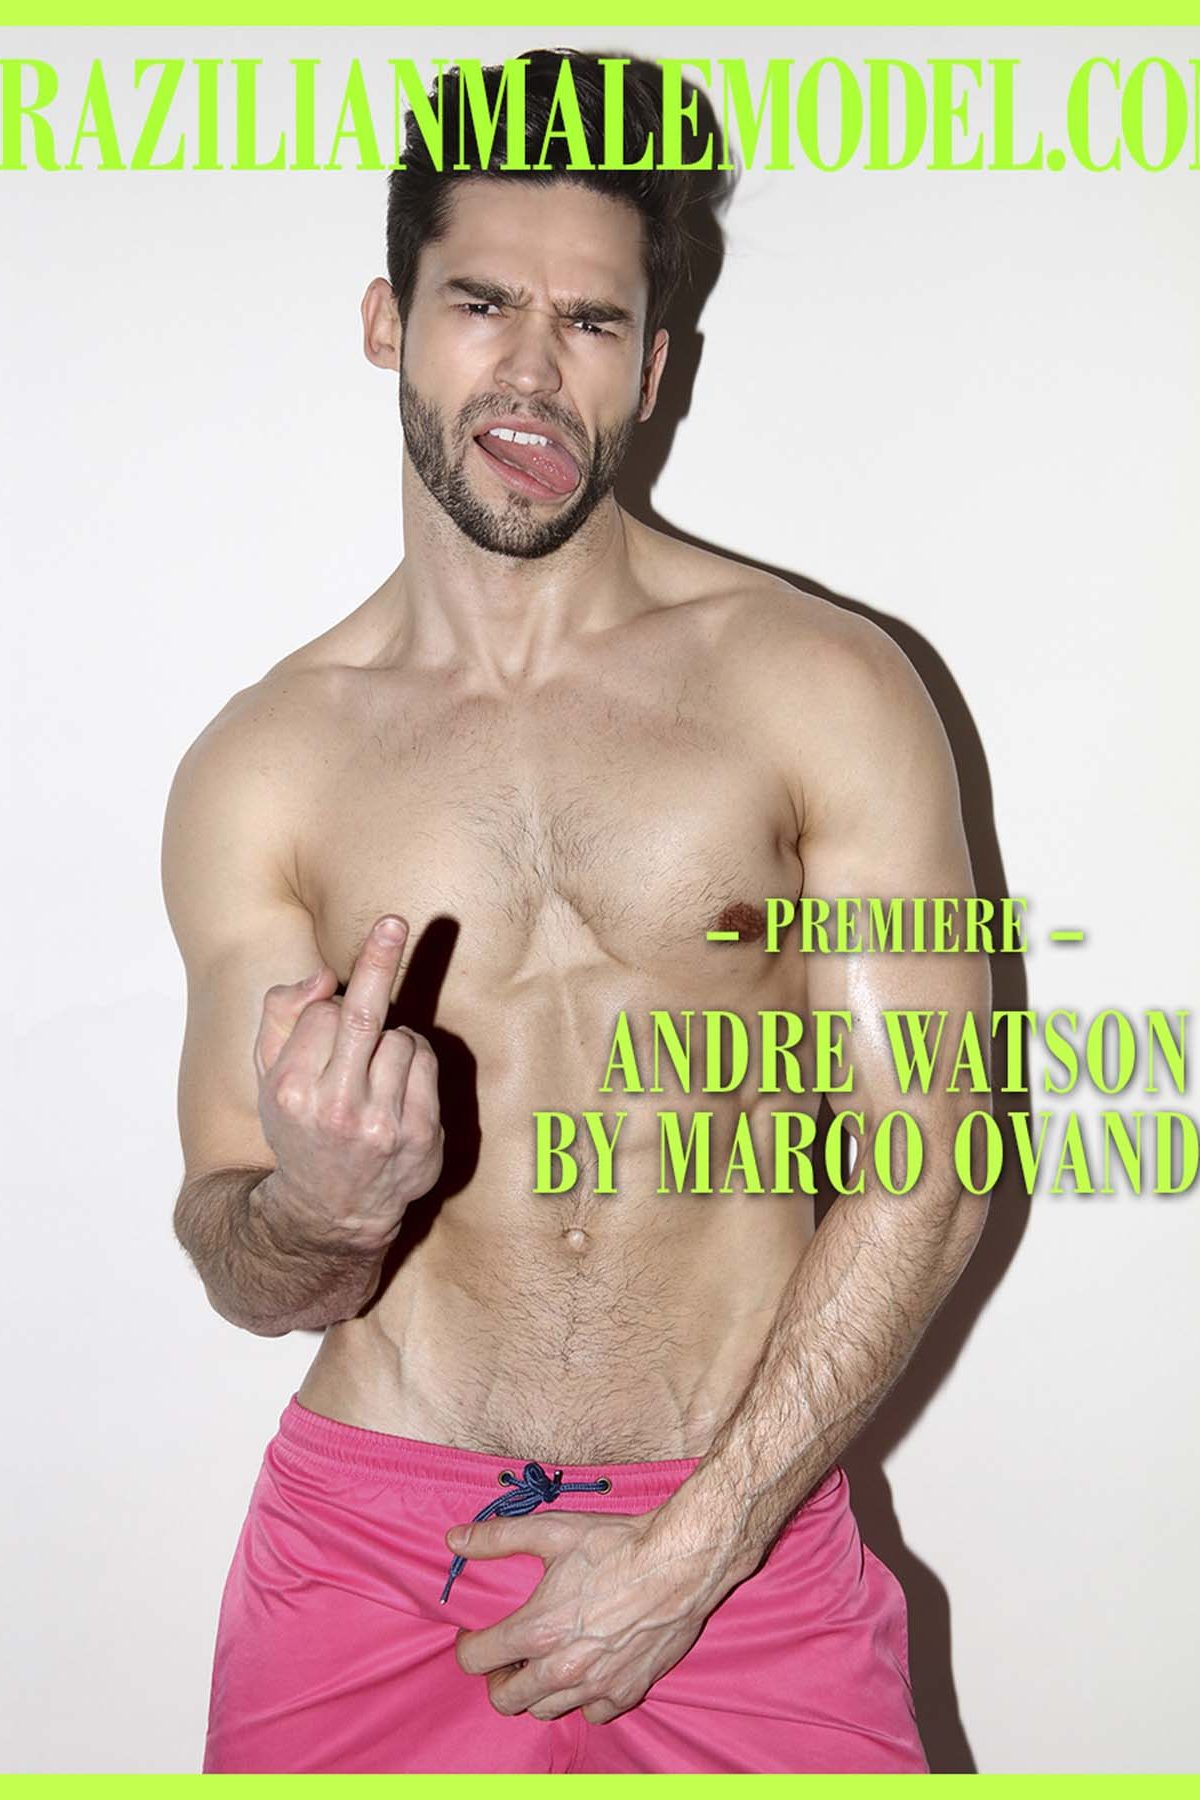 André Watson by Marco Ovando